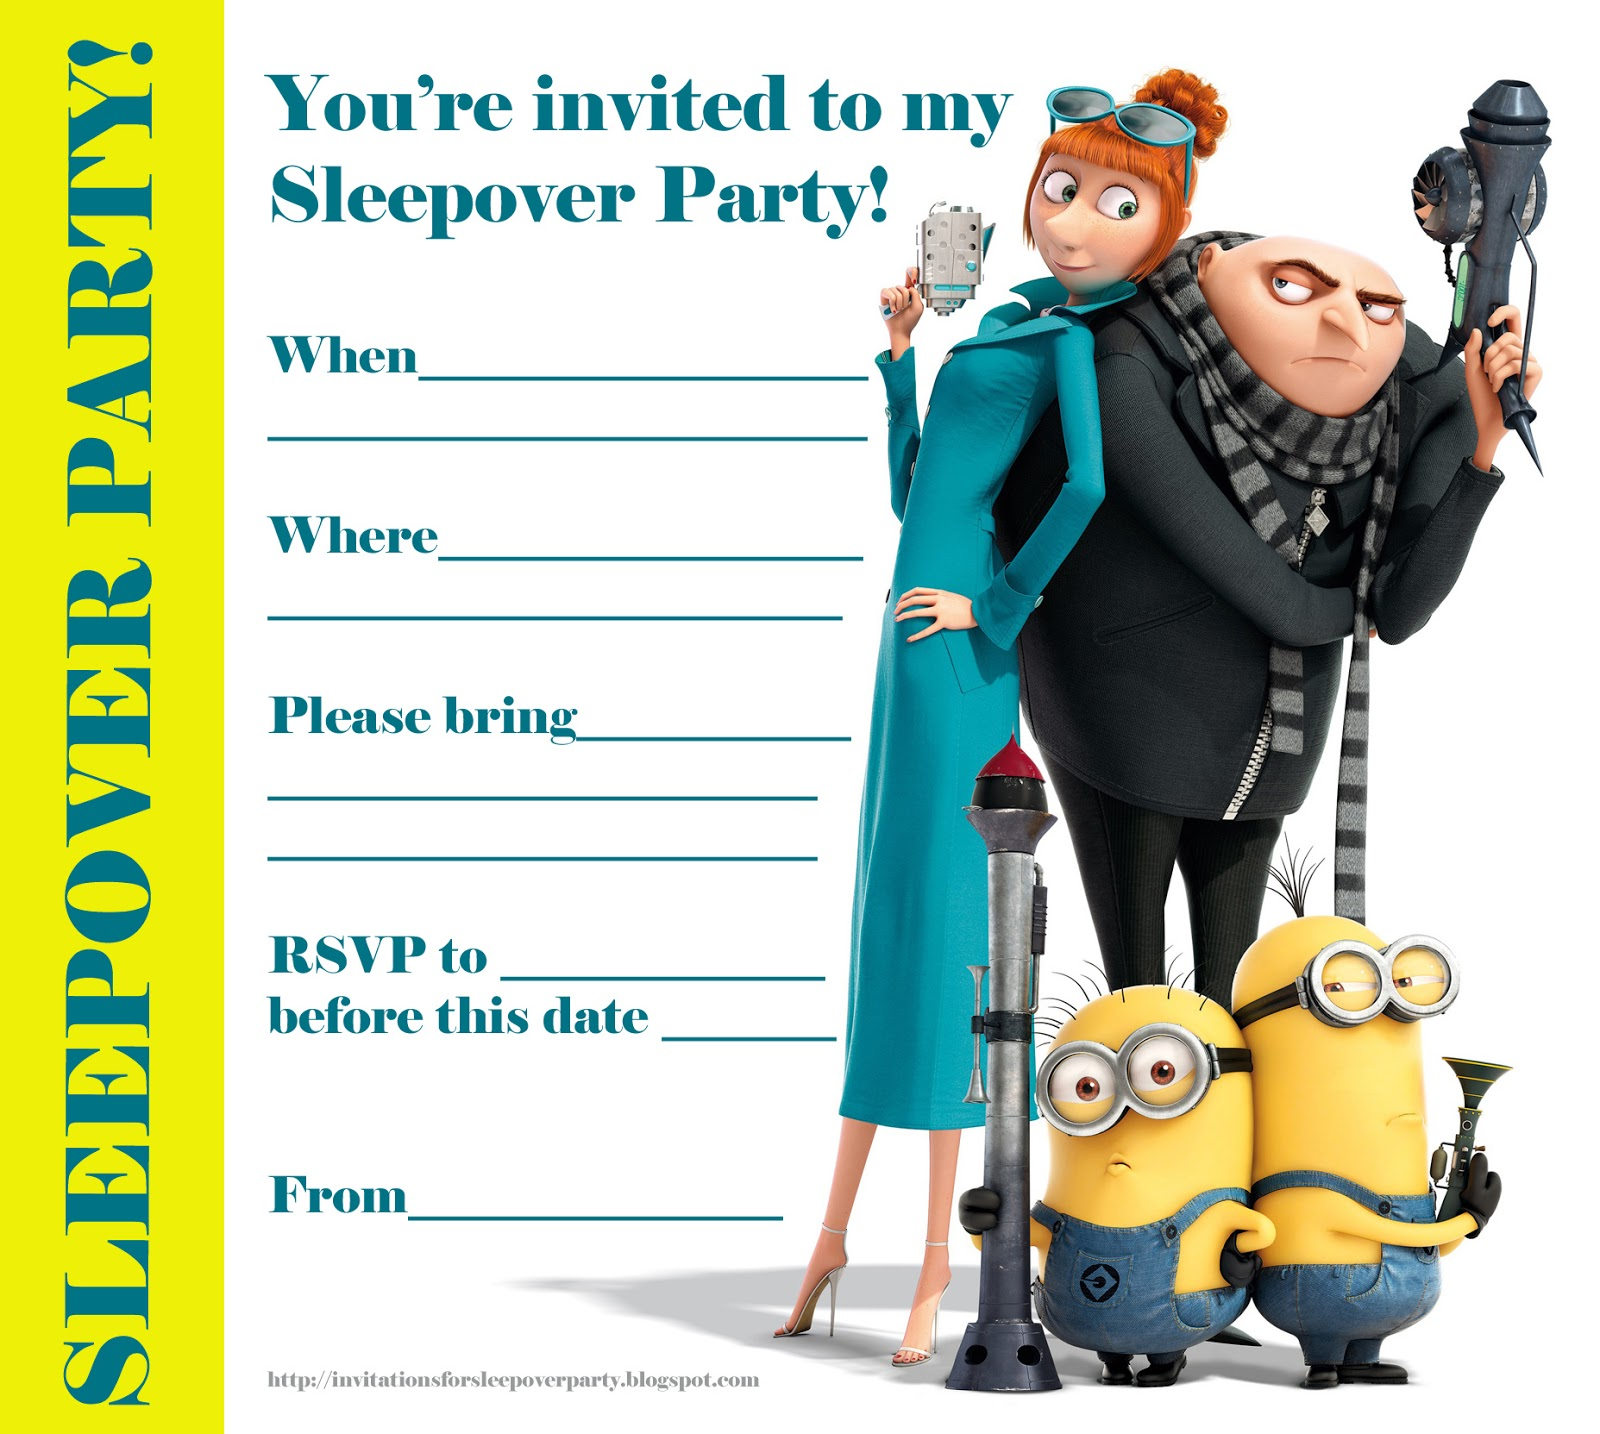 graphic about Minions Invitations Printable called Invites FOR SLEEPOVER Celebration